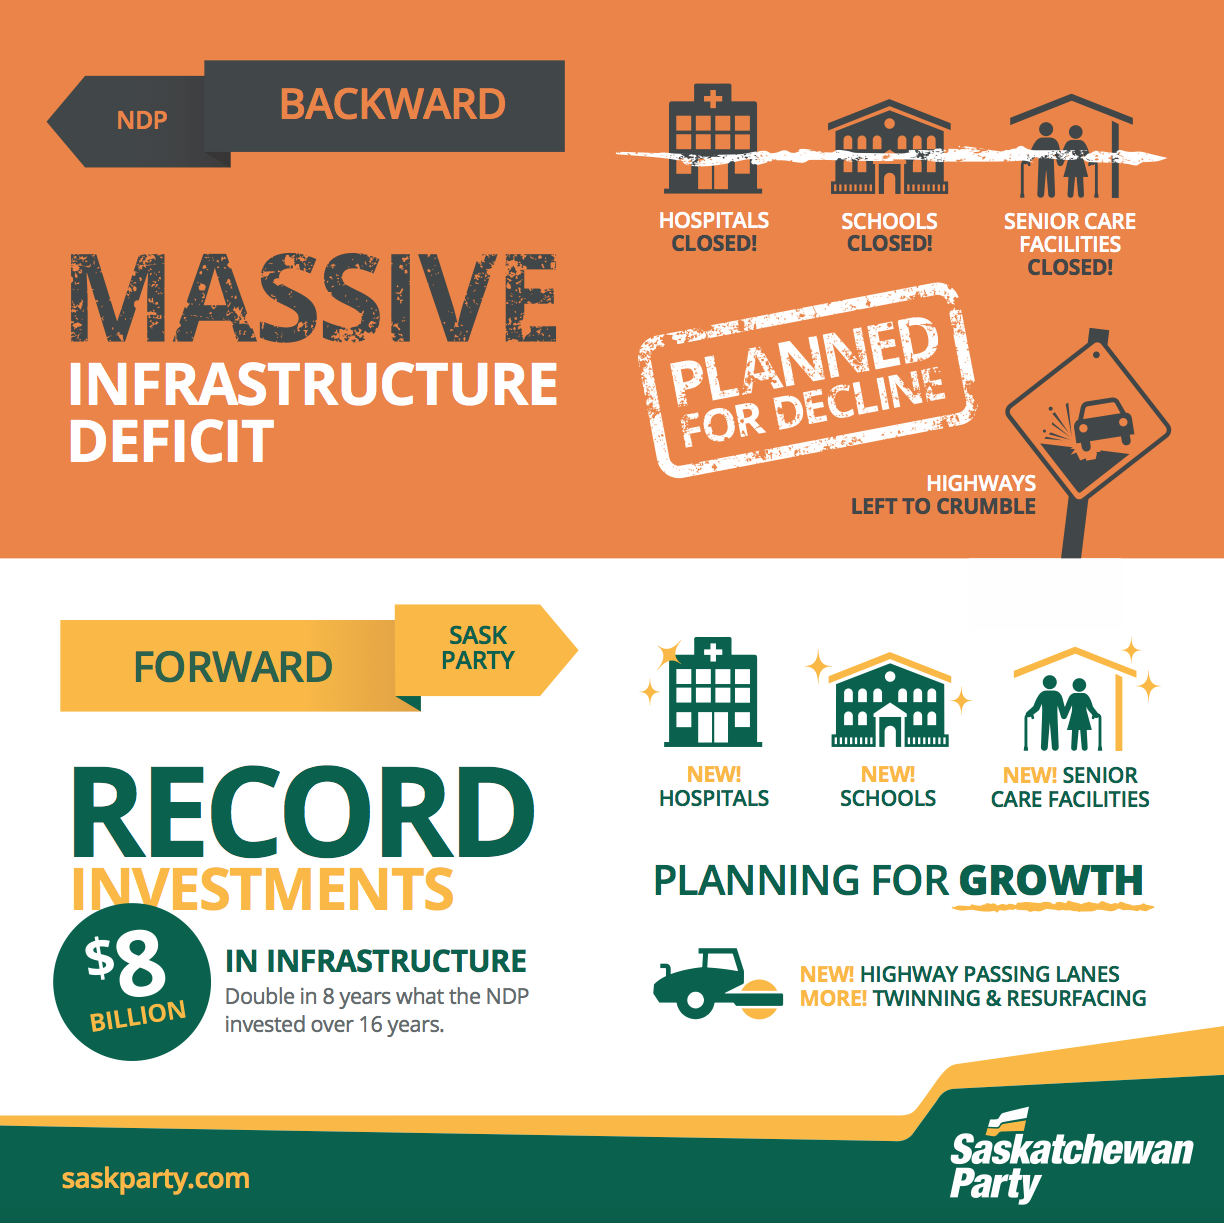 Investments In Infrastructure Will Help Keep Saskatchewan Strong